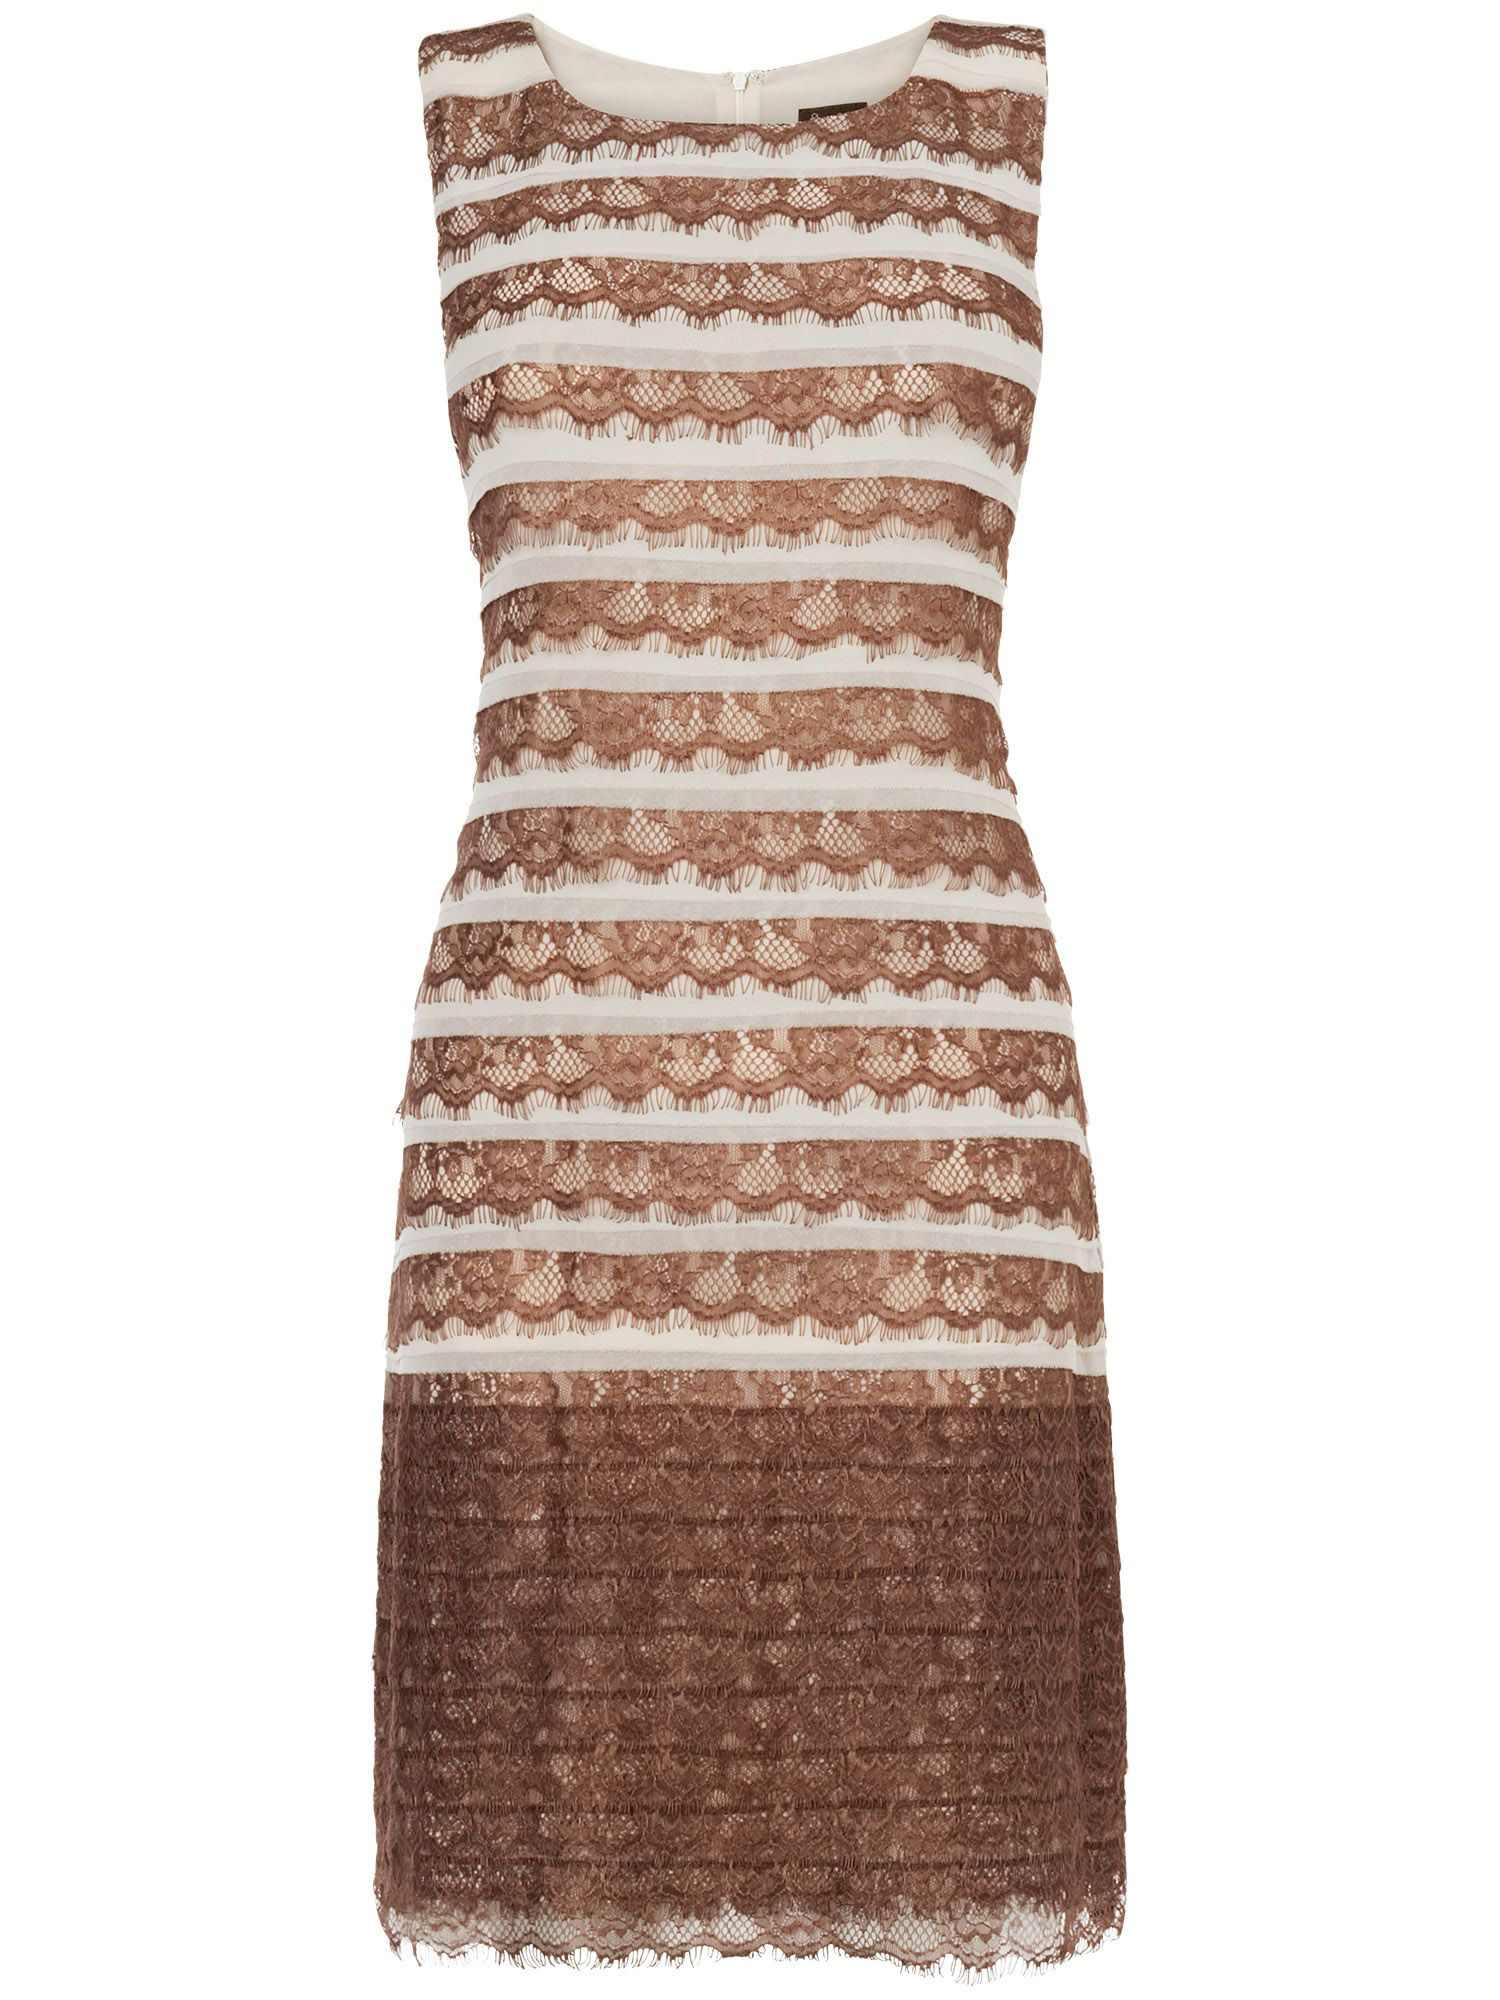 Sonia layered lace dress